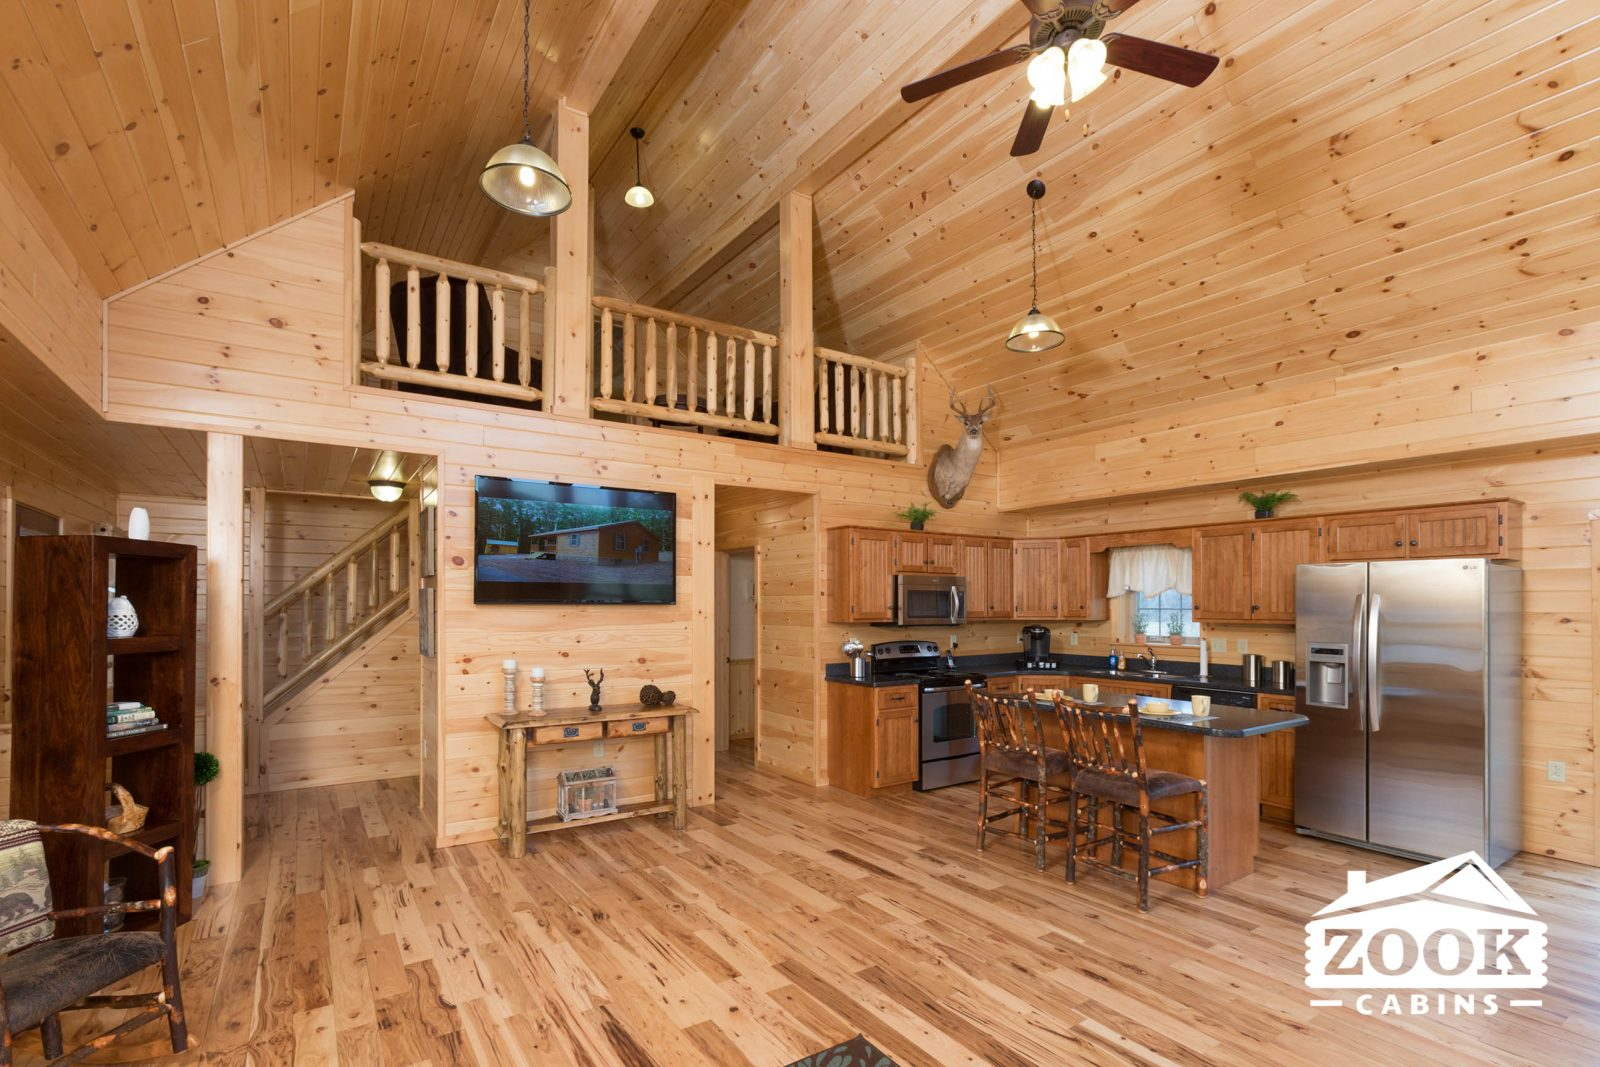 Cozy up in a log cabin worth buying